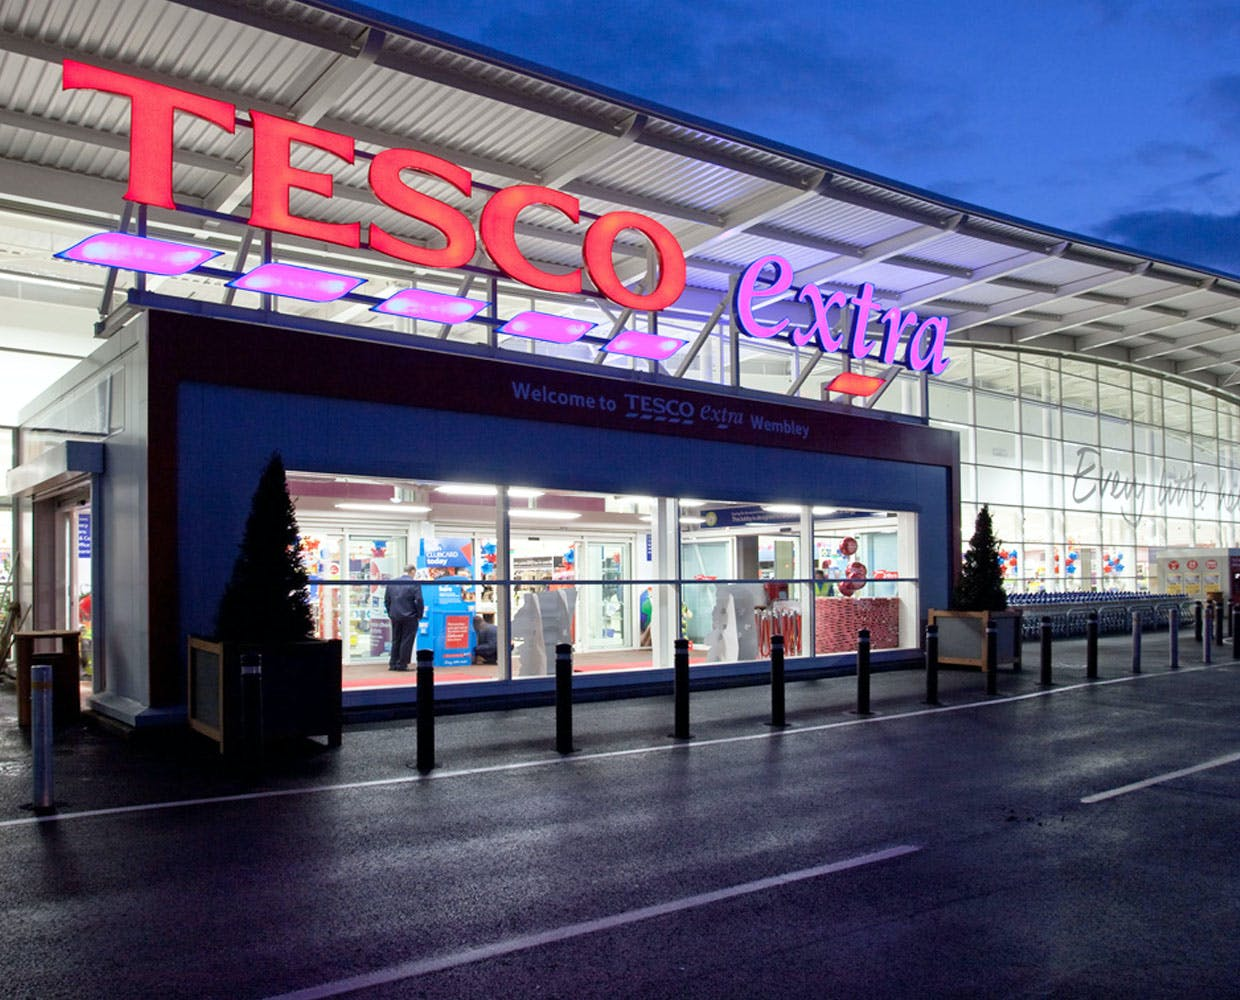 tesco development For almost a hundred years, we've been serving customers in the uk today, we serve millions of customers a week across the world right now, we're writing the next chapter in our story, with an ambition to be the world's most loved multi-channel.